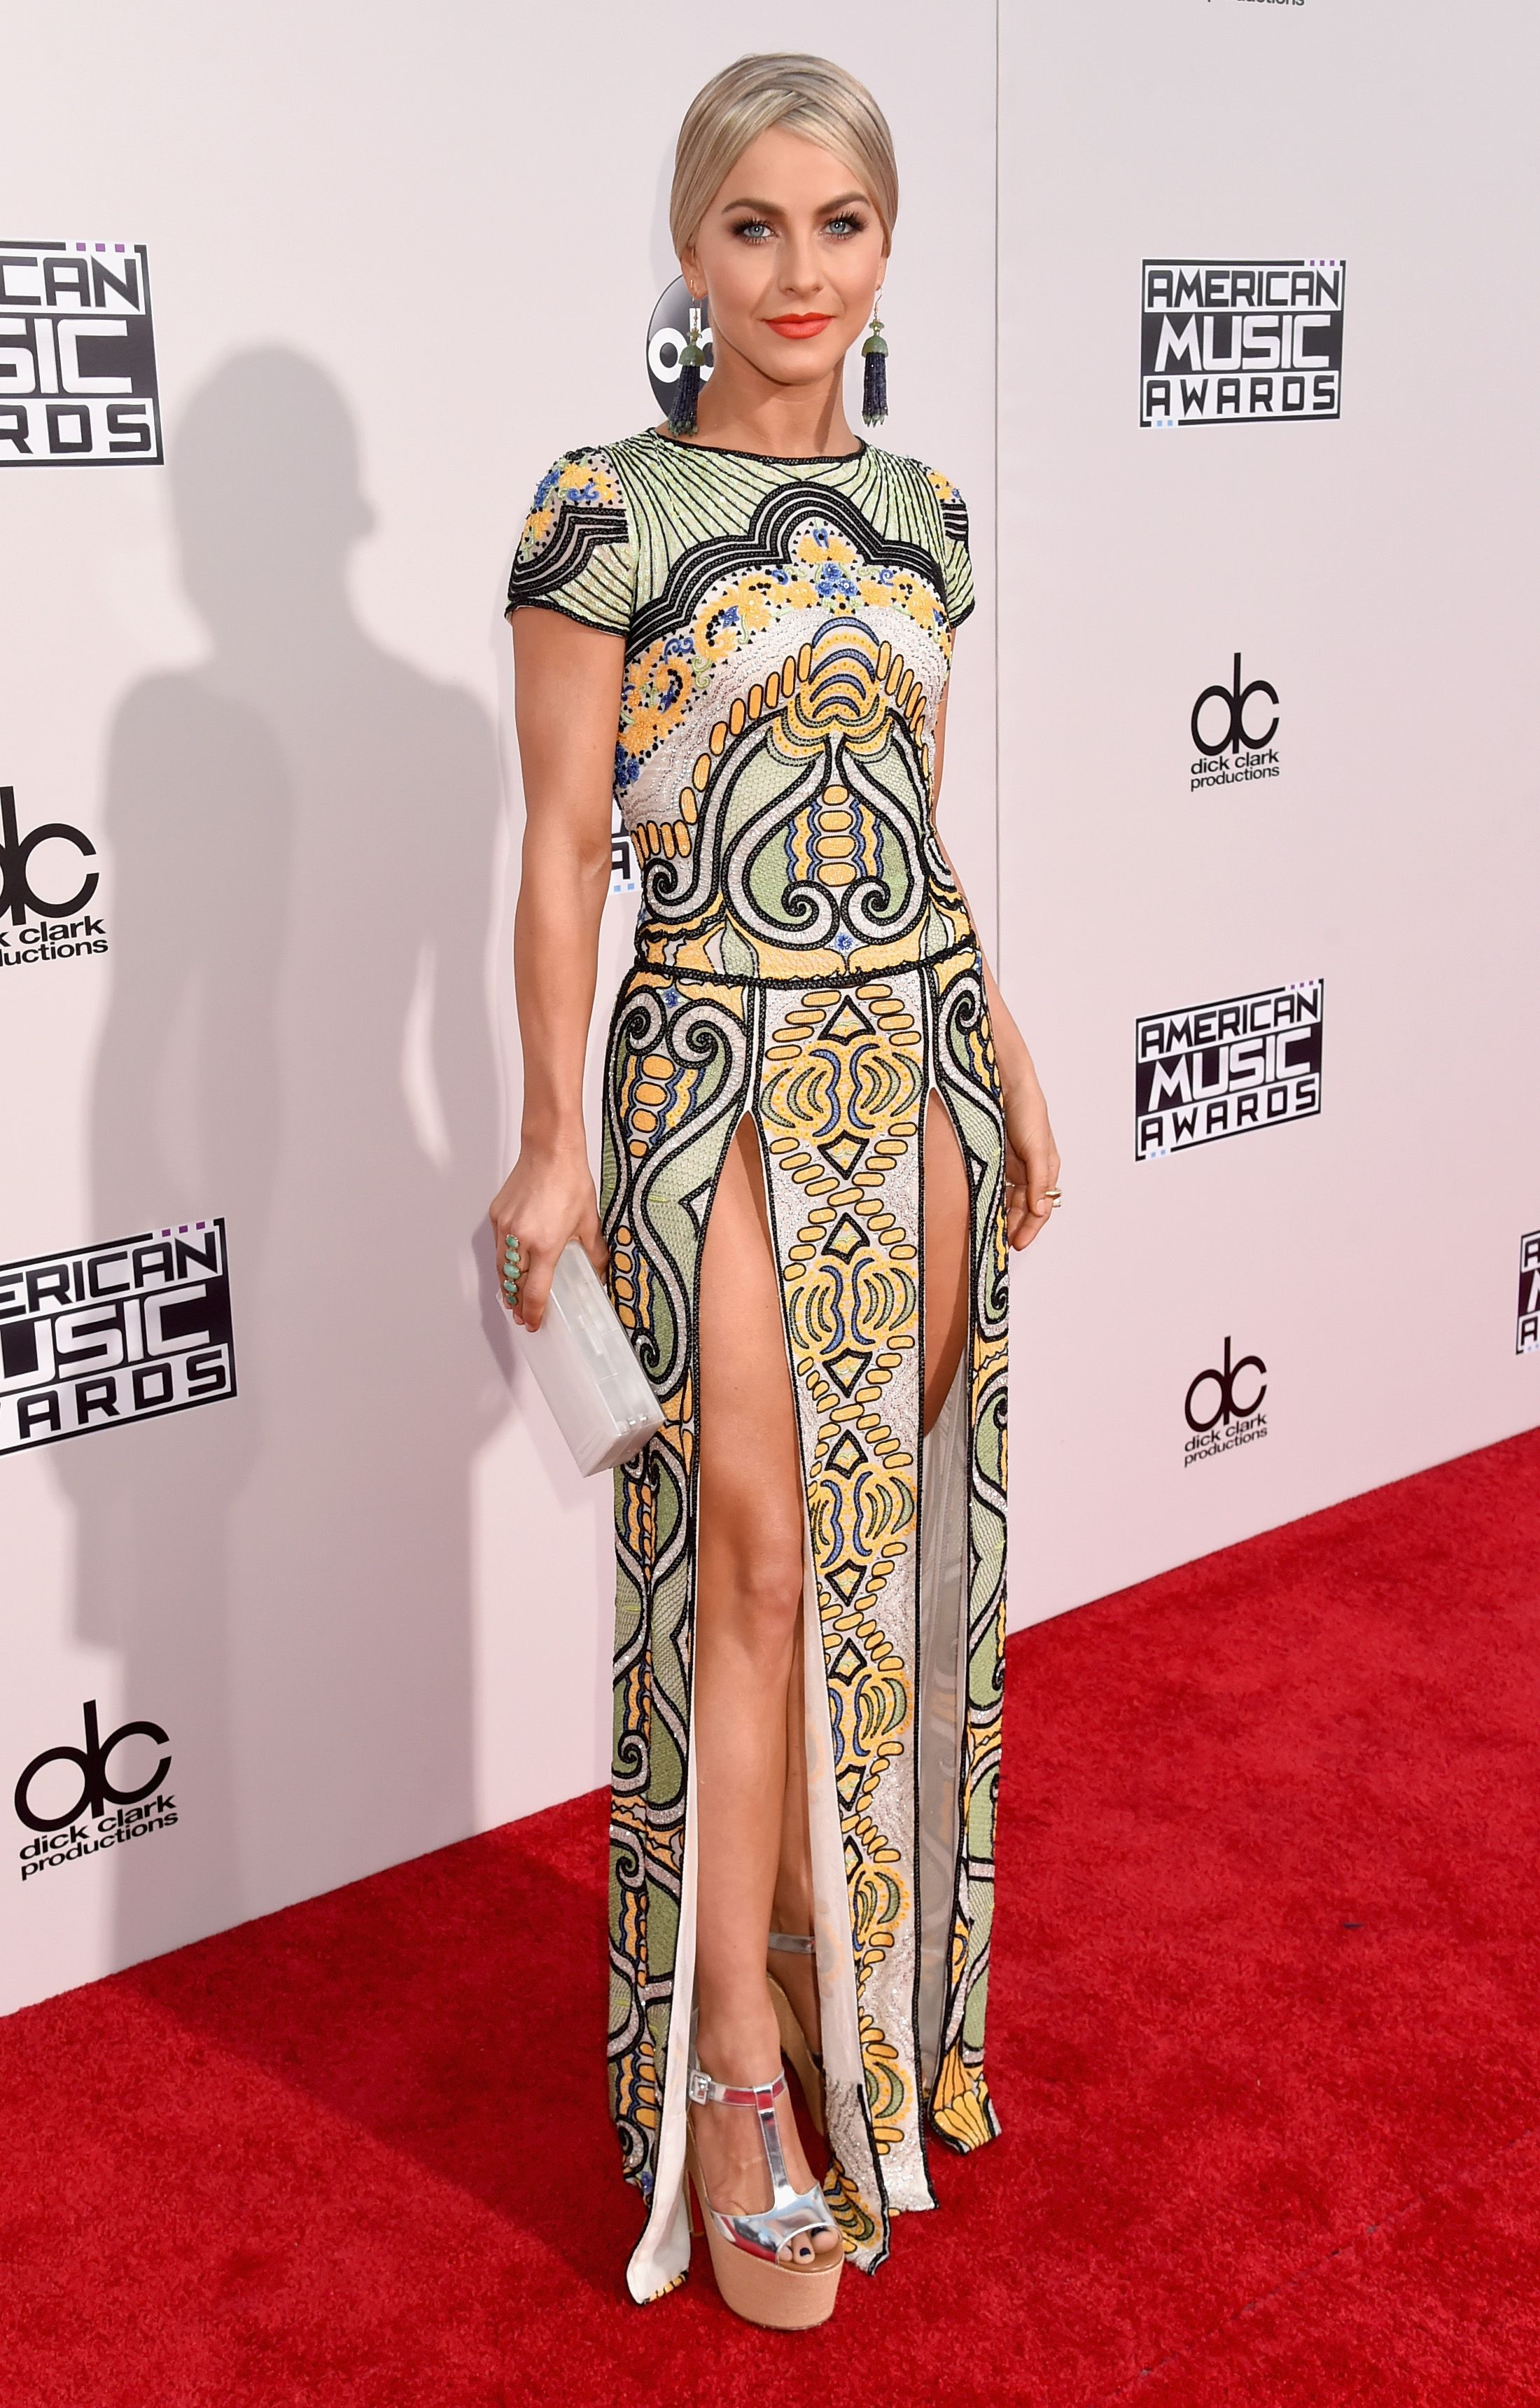 In Naeem Khan. No good in my book. Those slits are way too high